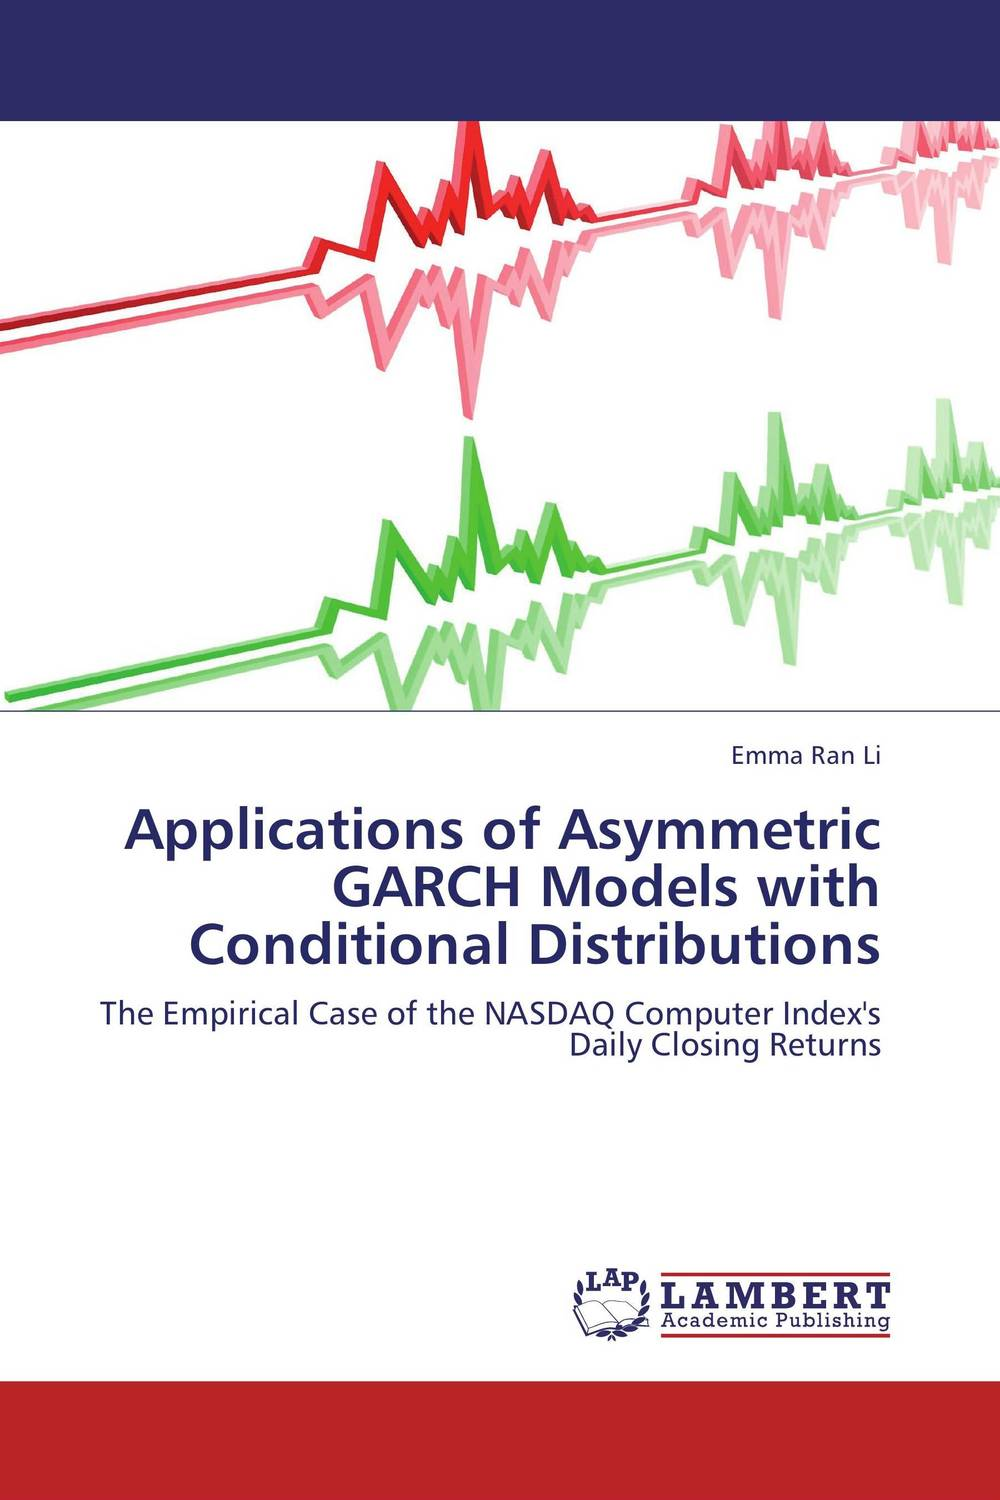 Applications of Asymmetric GARCH Models with Conditional Distributions